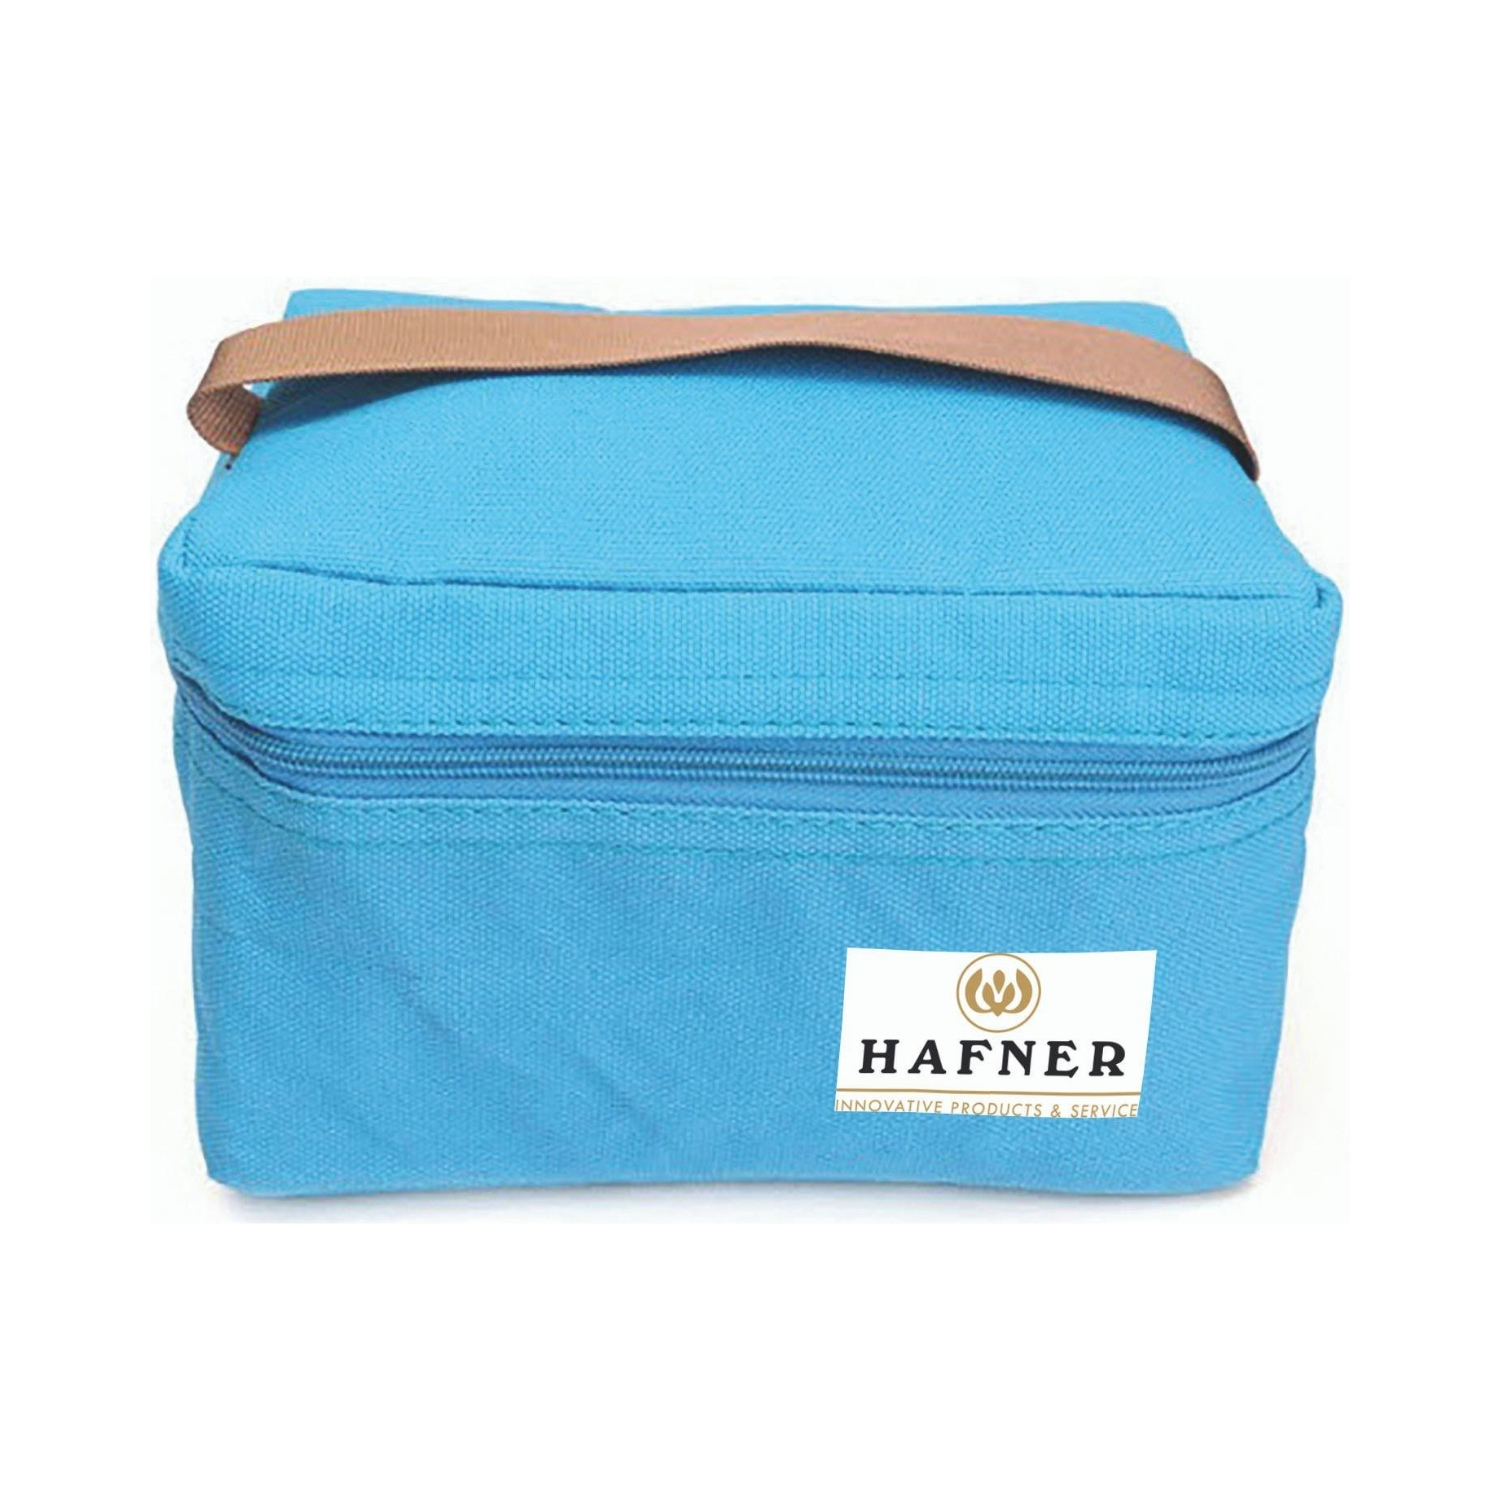 Hafner Thermo-Cooler Bag